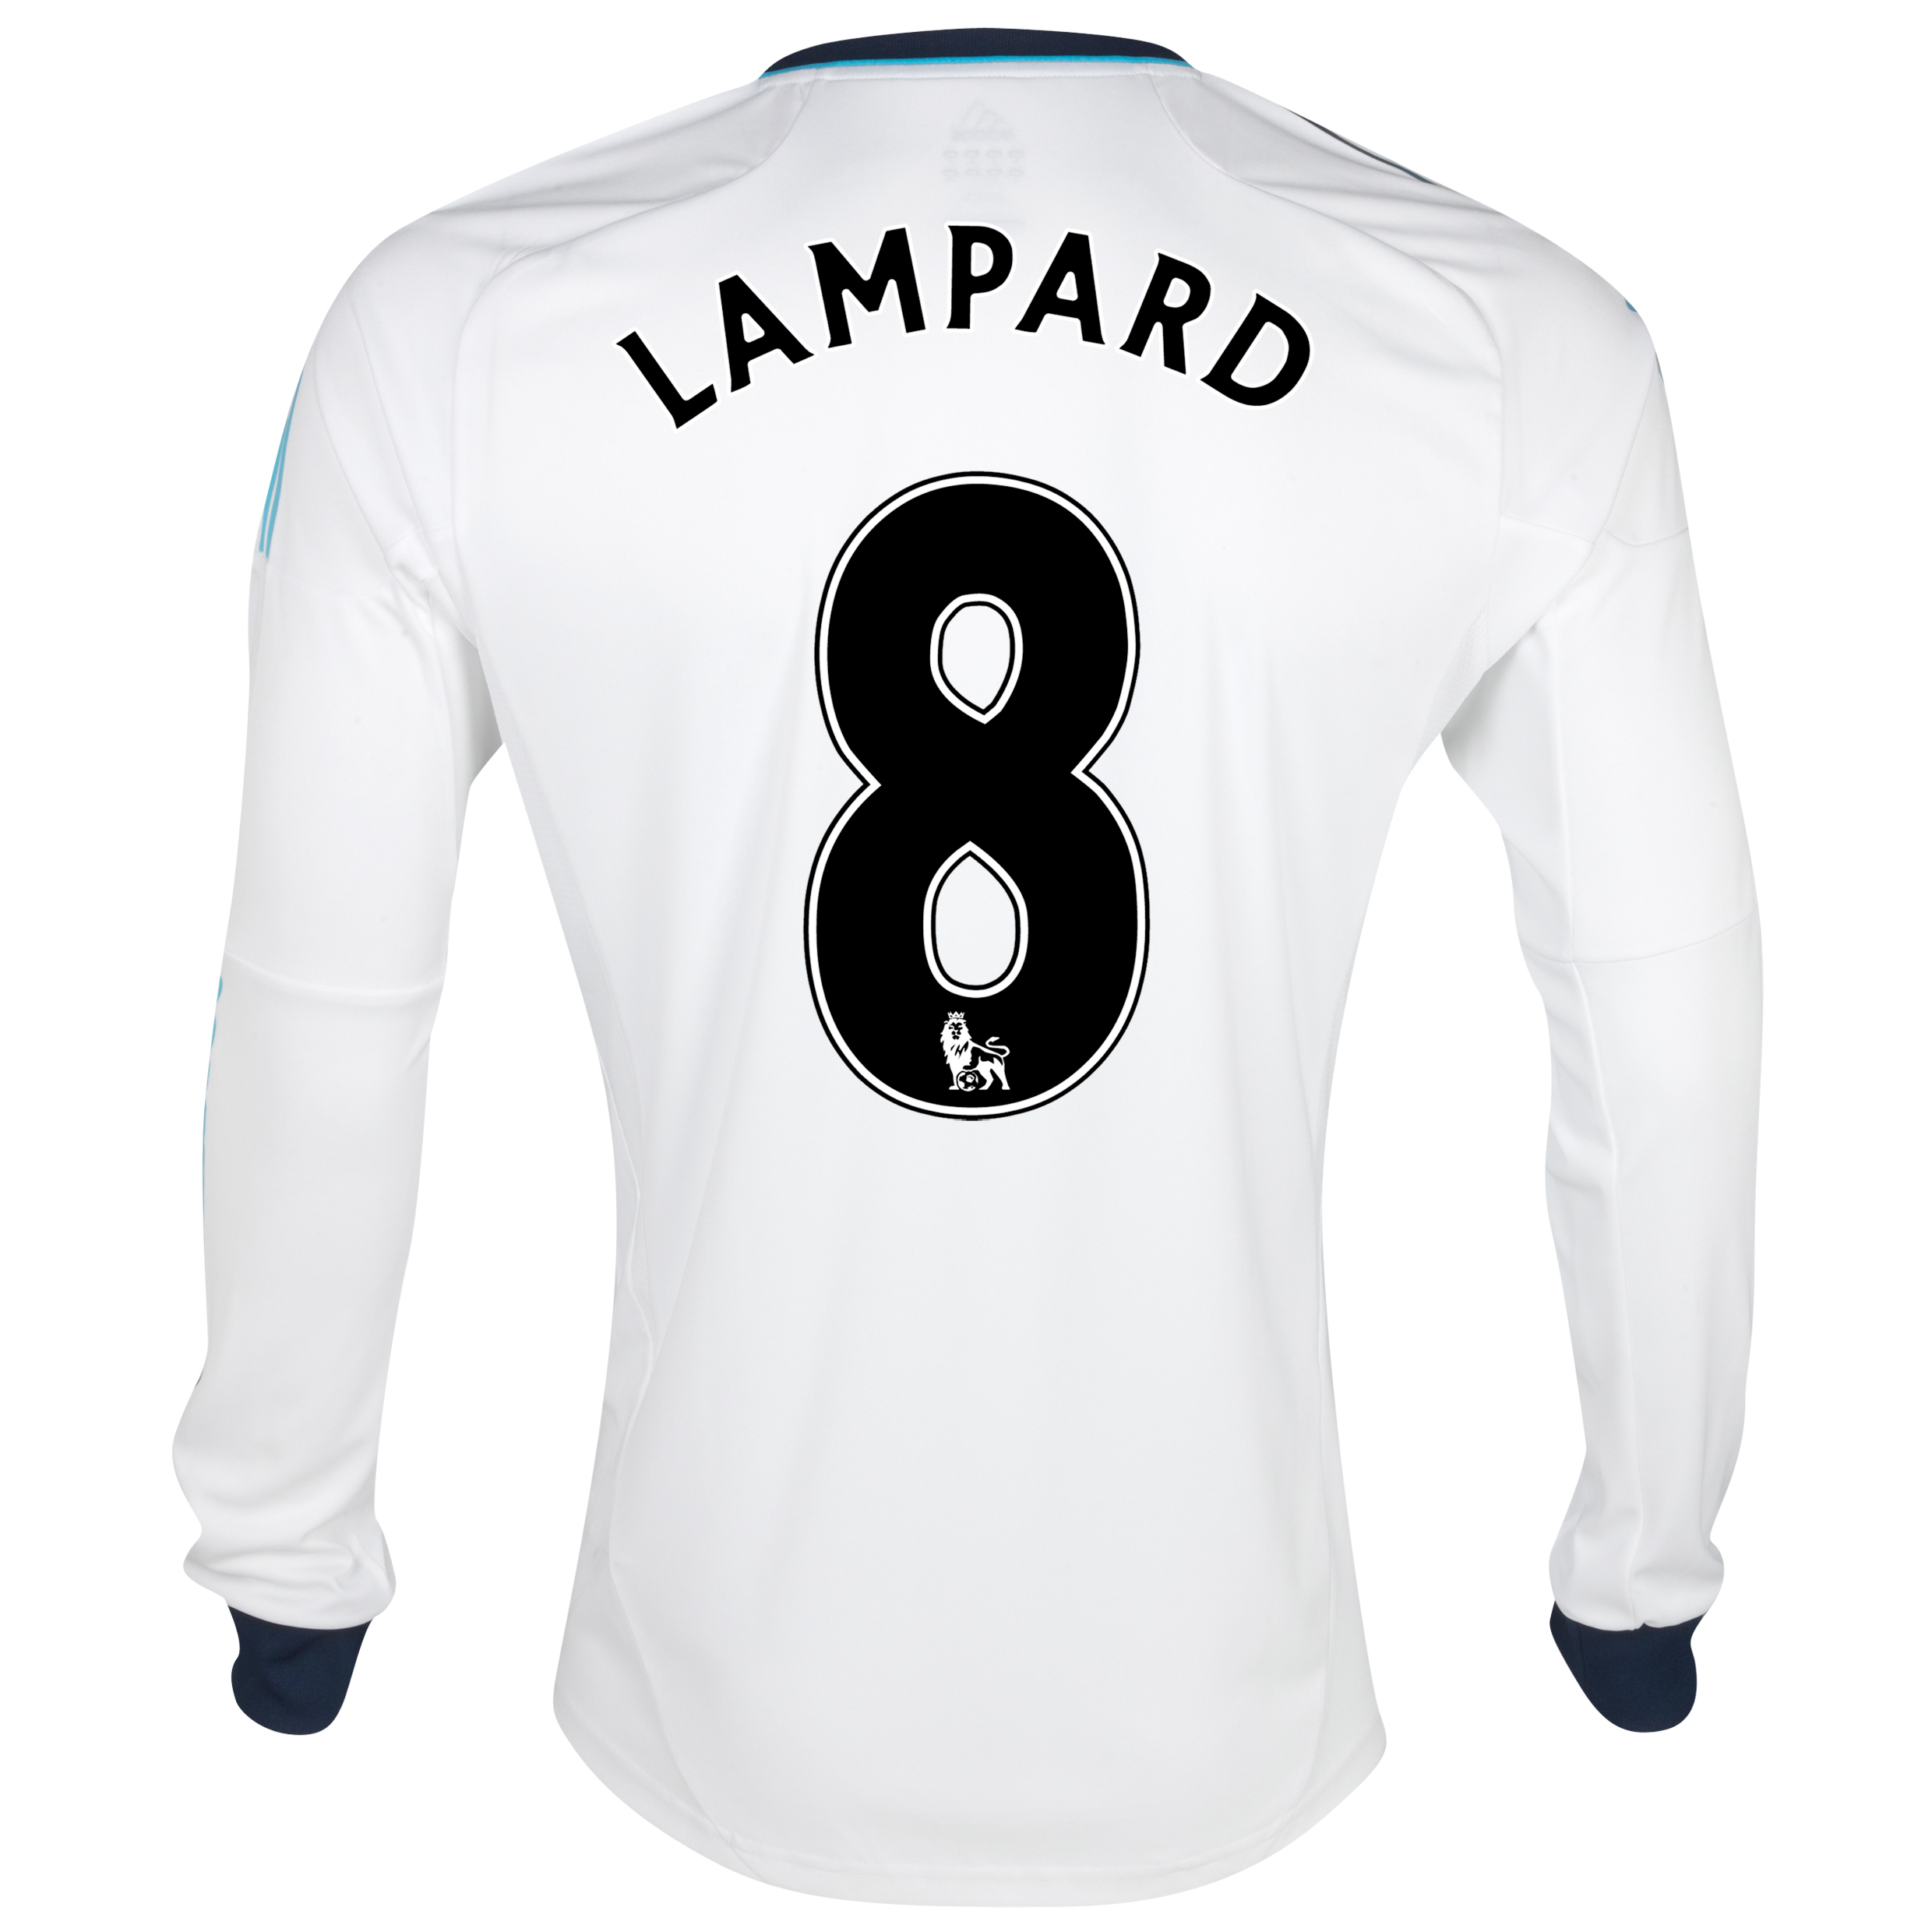 Chelsea Away Shirt 2012/13 - Long Sleeved - Kids with Lampard 8 printing